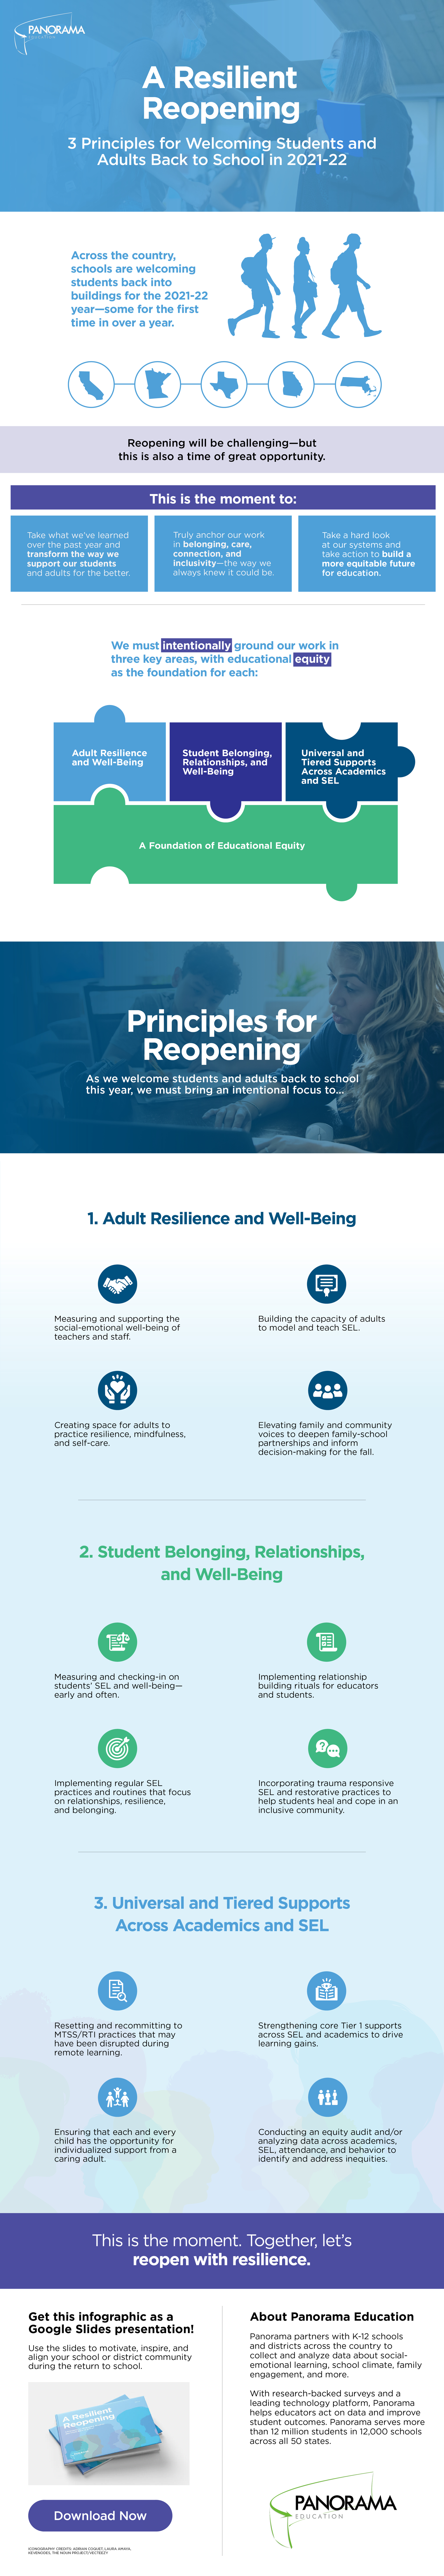 Resilient-Reopening-Infographic